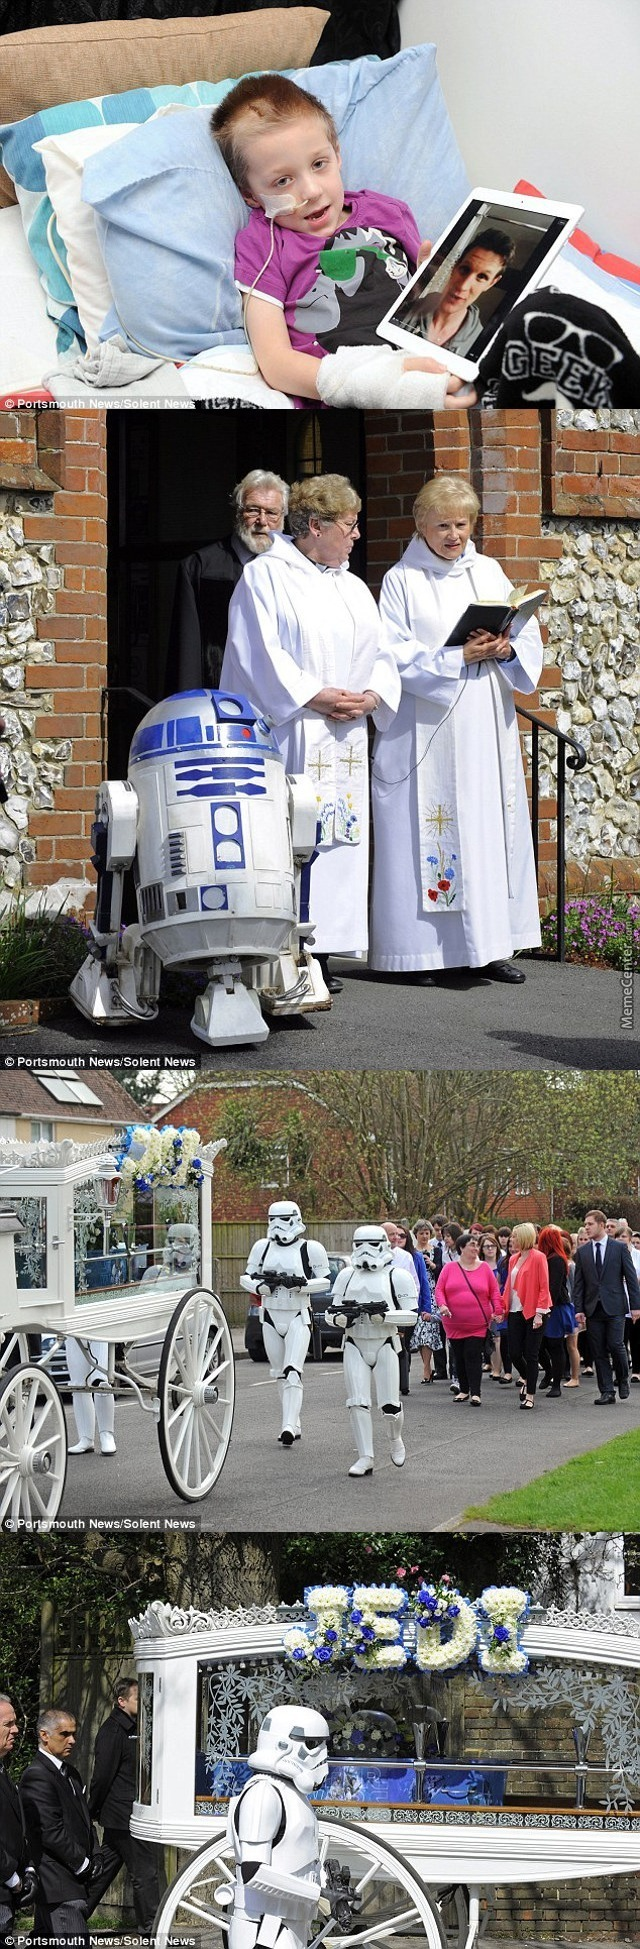 4 Years Old Boy Diagnosed With A Brain Tumor Final Wish A Song From Doctor Who And A Star Wars Themed Funeral